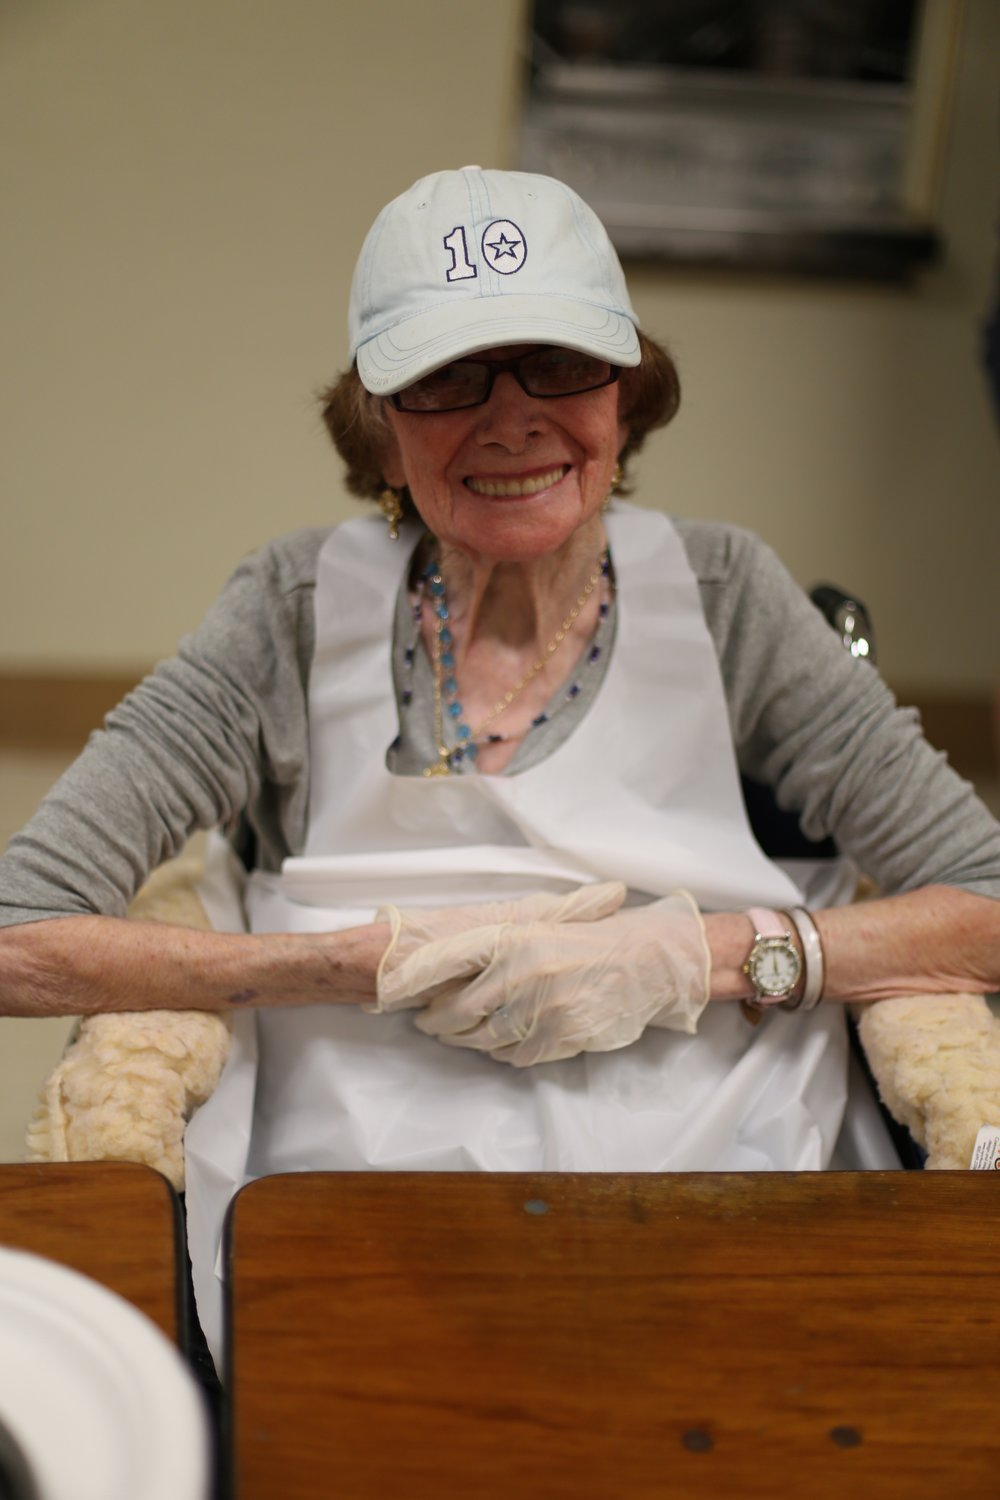 Noreen all smiles, getting ready to serve lunch at Salvation Army. Photo courtesy of Vienna.